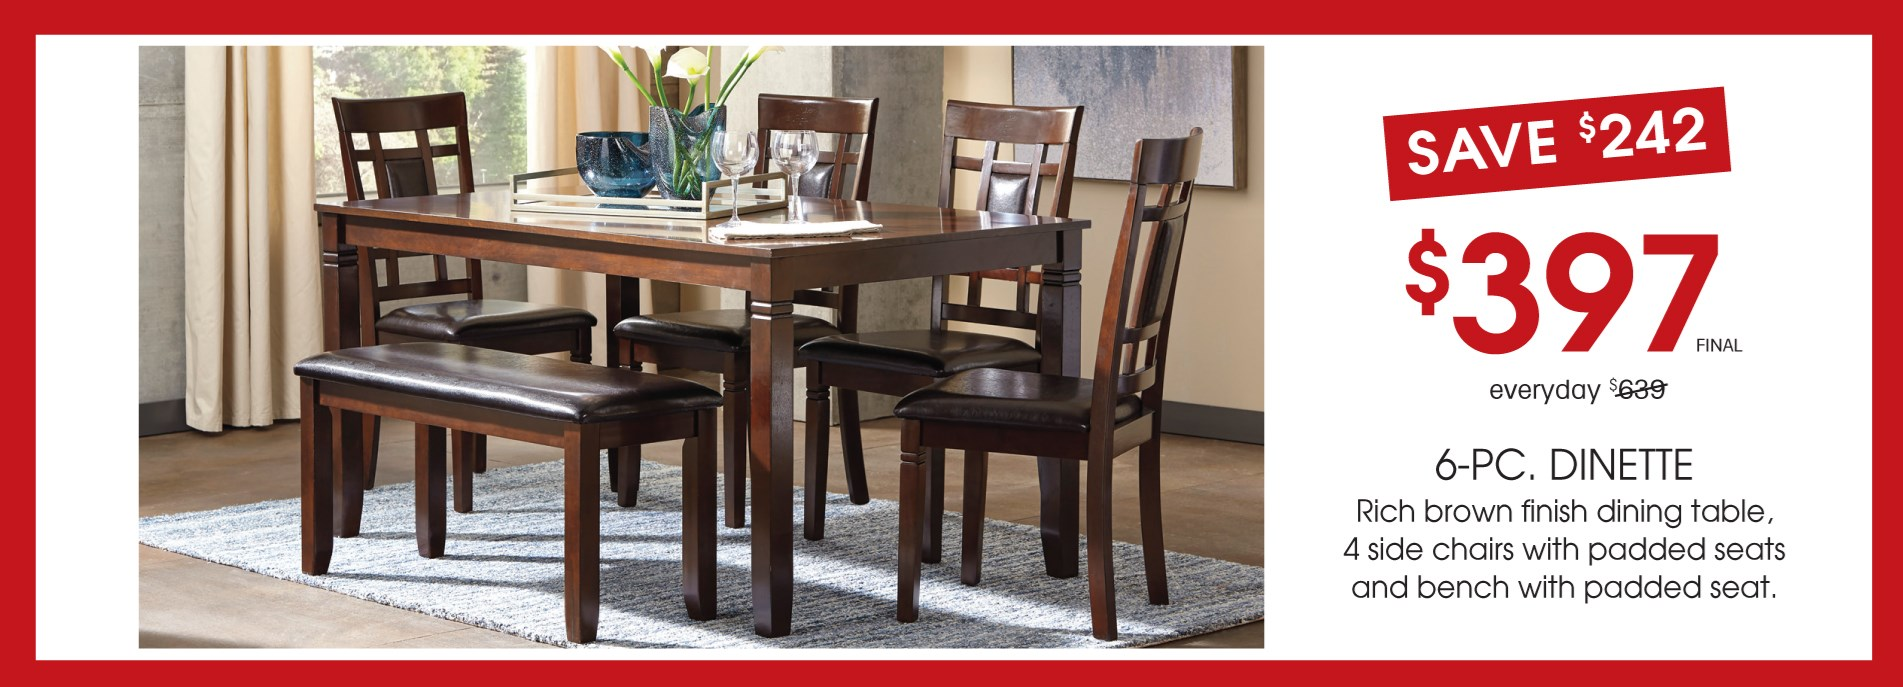 Value City Furniture Manahawkin Njfurniture By Outlet Furniture By Outlet